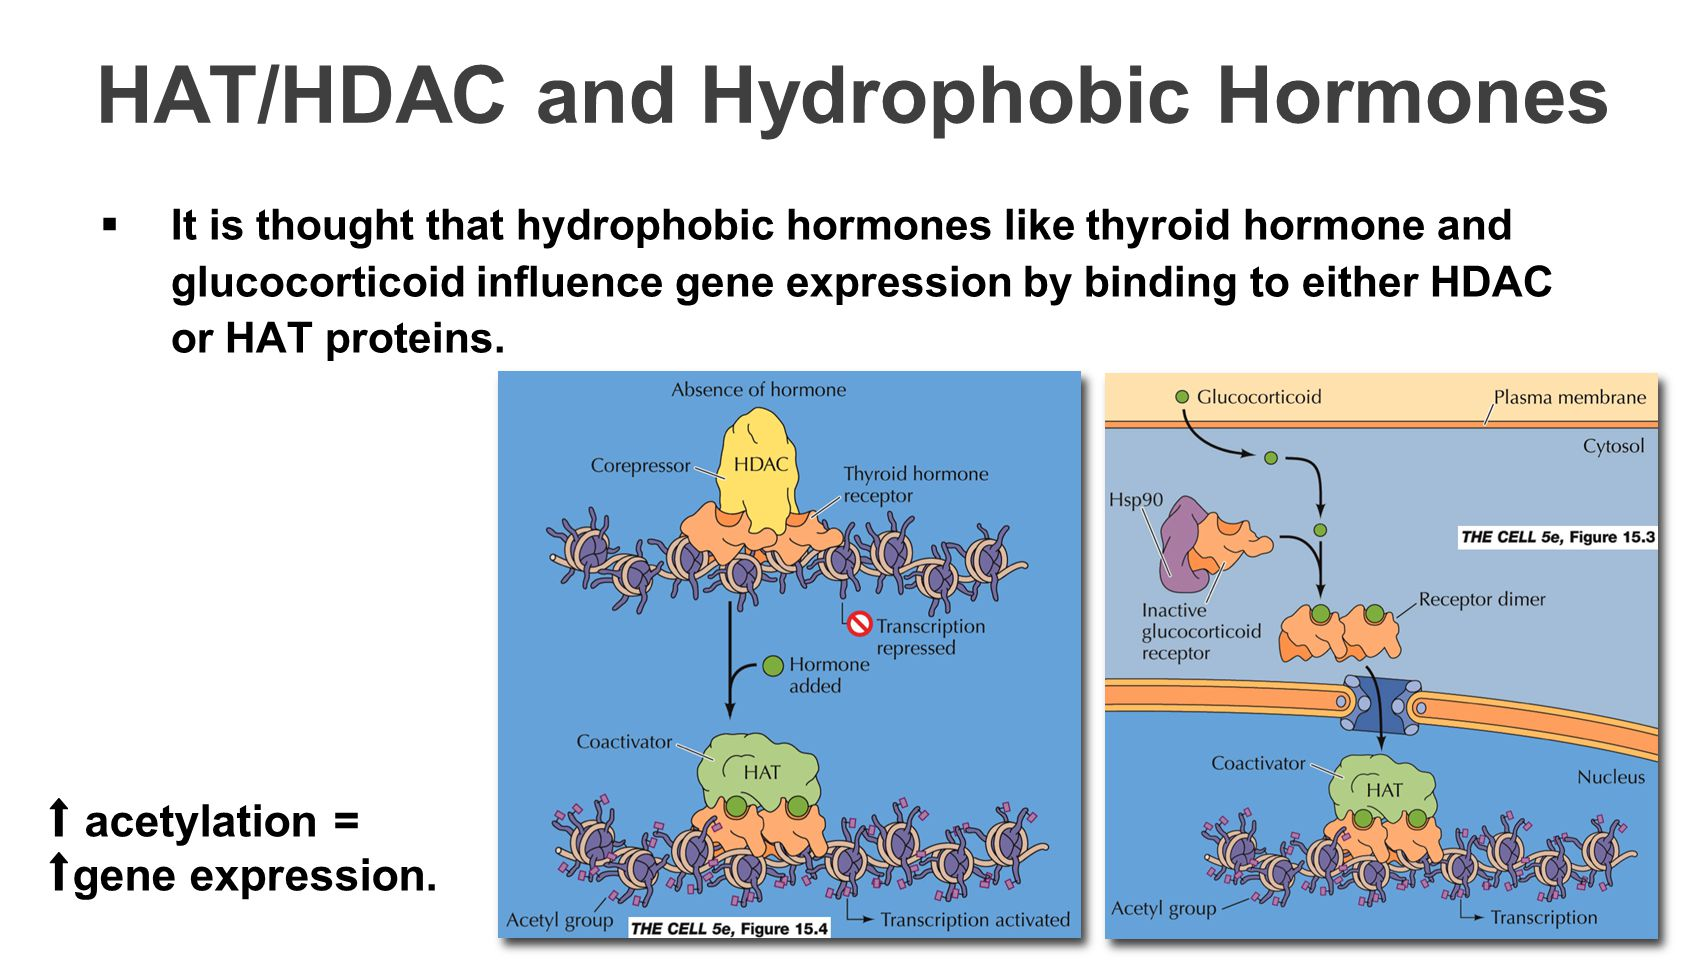 HAT/HDAC and Hydrophobic Hormones  It is thought that hydrophobic hormones like thyroid hormone and glucocorticoid influence gene expression by binding to either HDAC or HAT proteins.